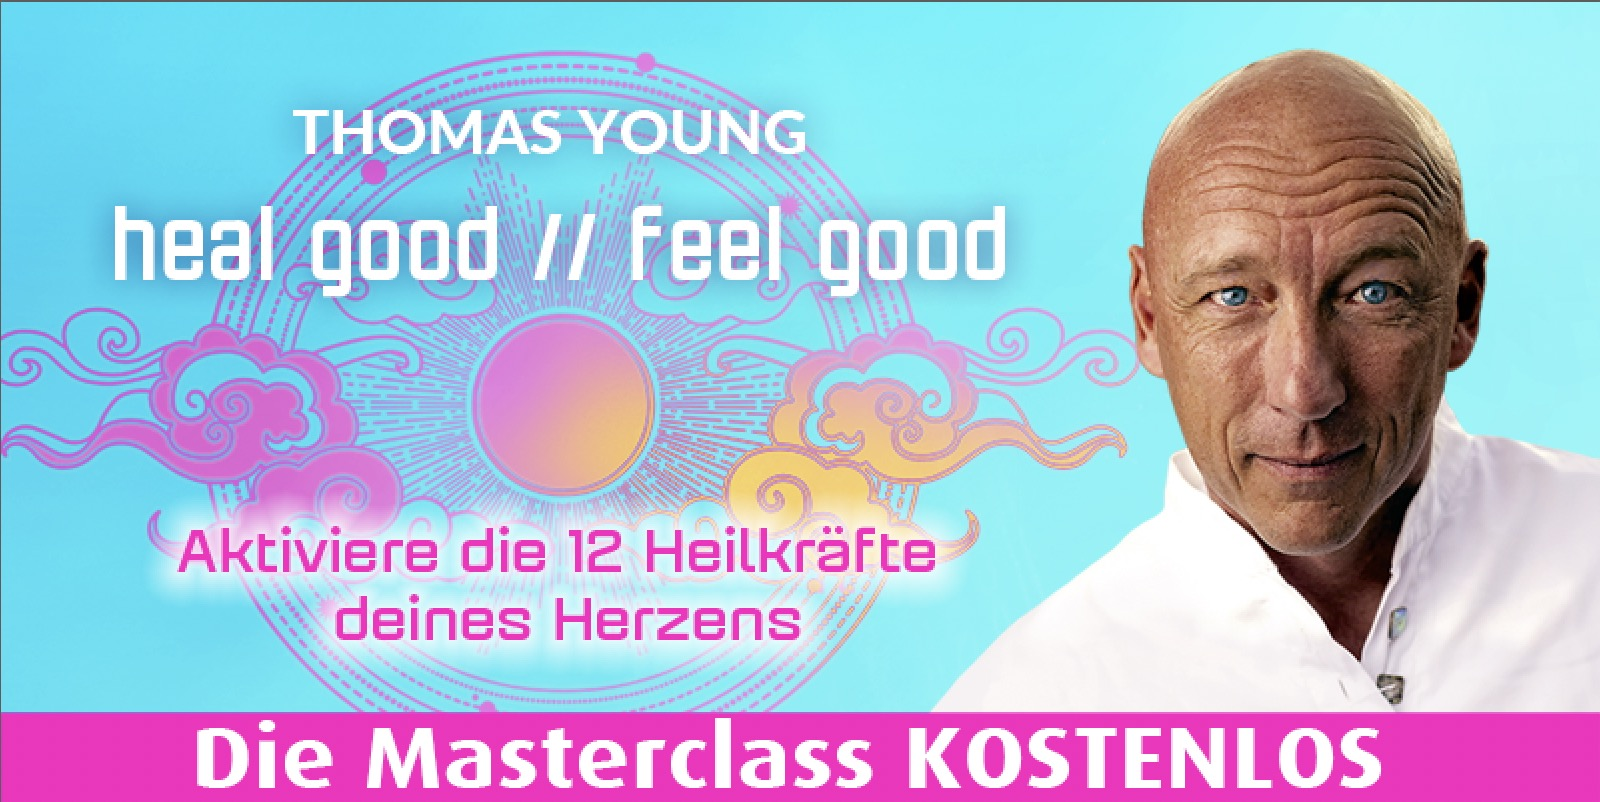 Thomas Young - heal good feel good